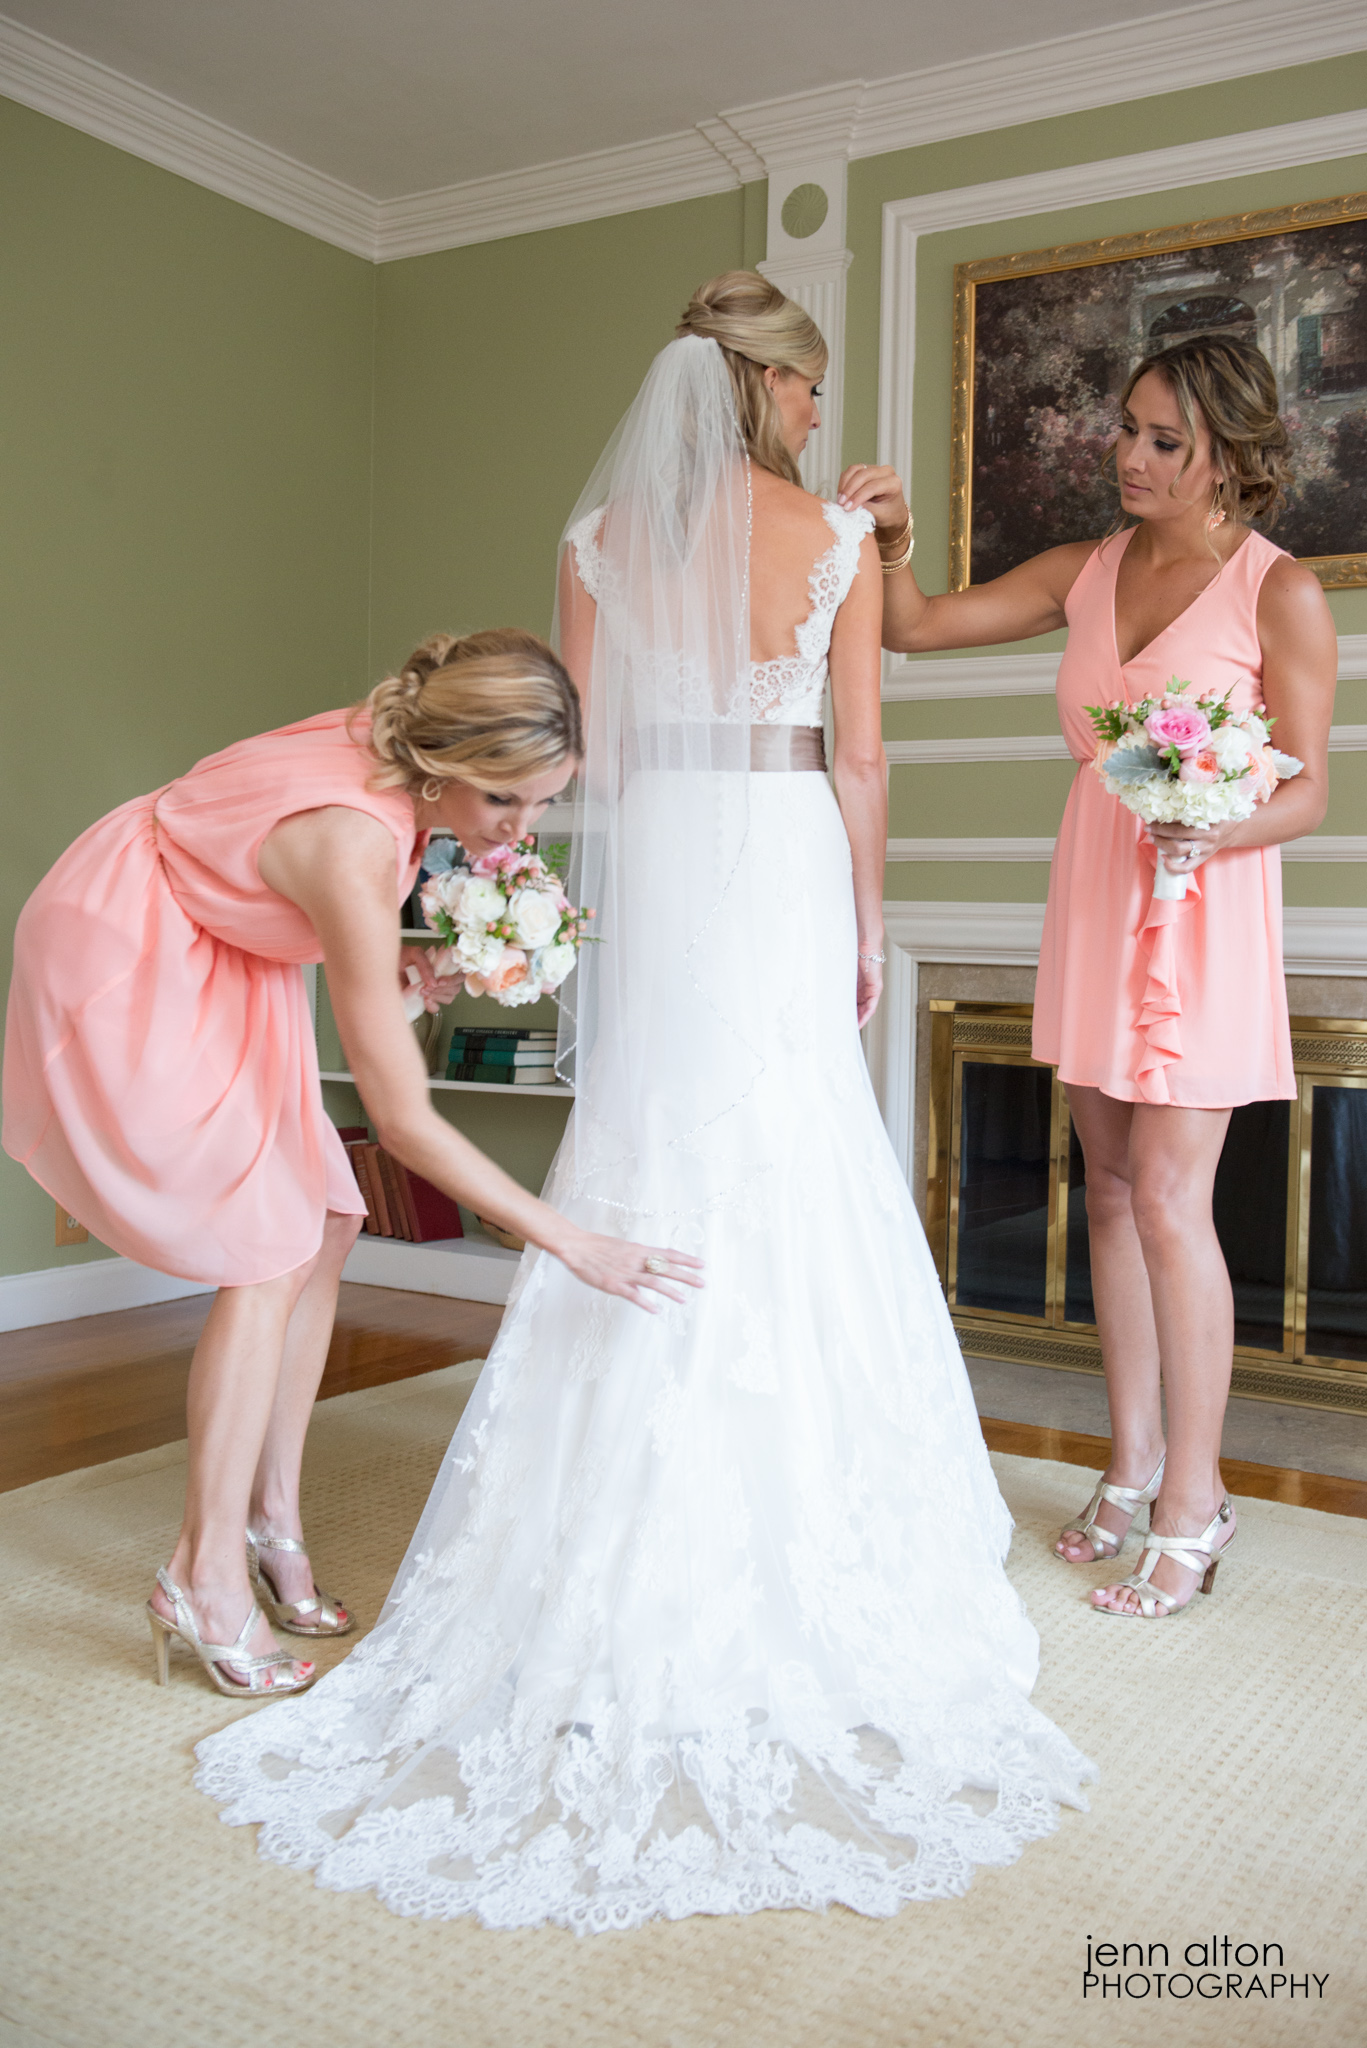 Final touches on dress with bride and maid of honors, Henderson House